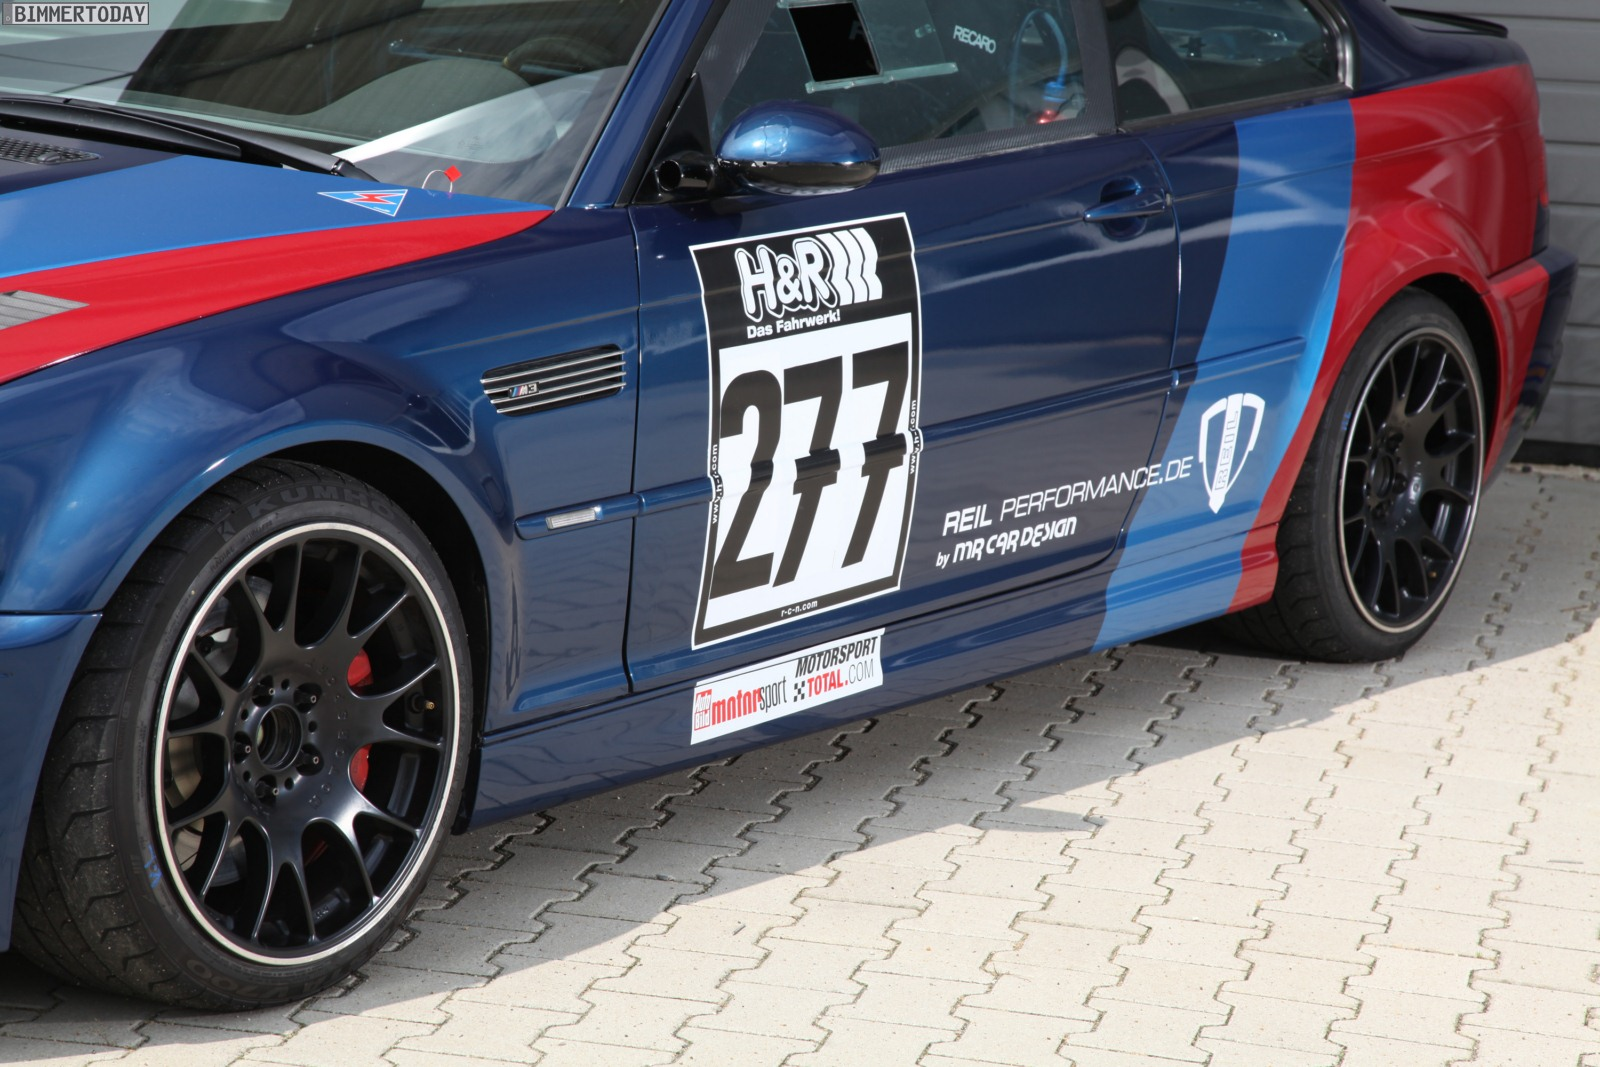 BMW M3 CSL Tuning MR Car Design Reil Performance 2012 01